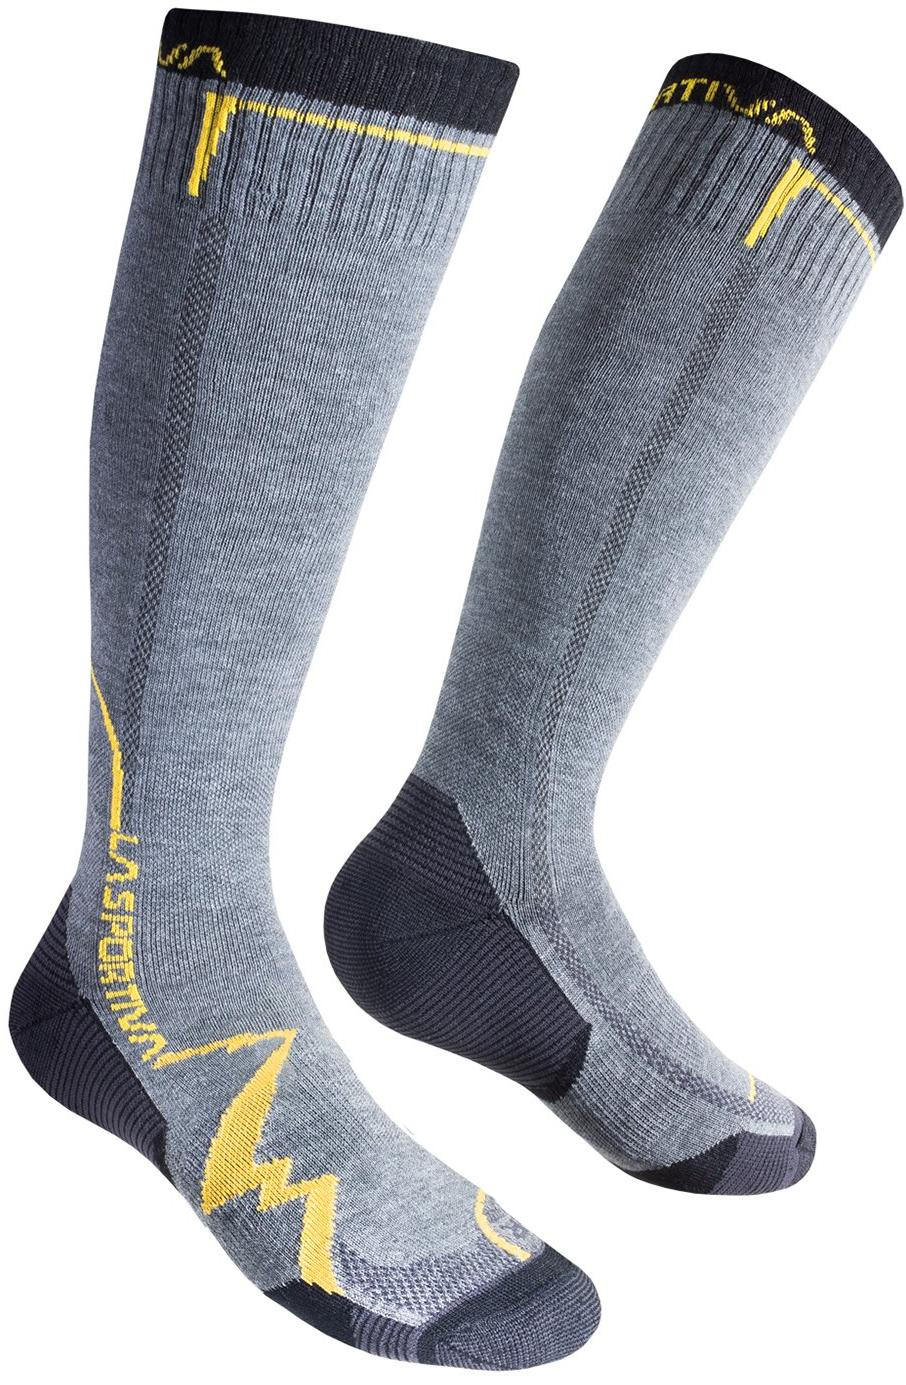 Носки MOUNTAIN SOCKS LONG Grey/Yellow, 29QGY